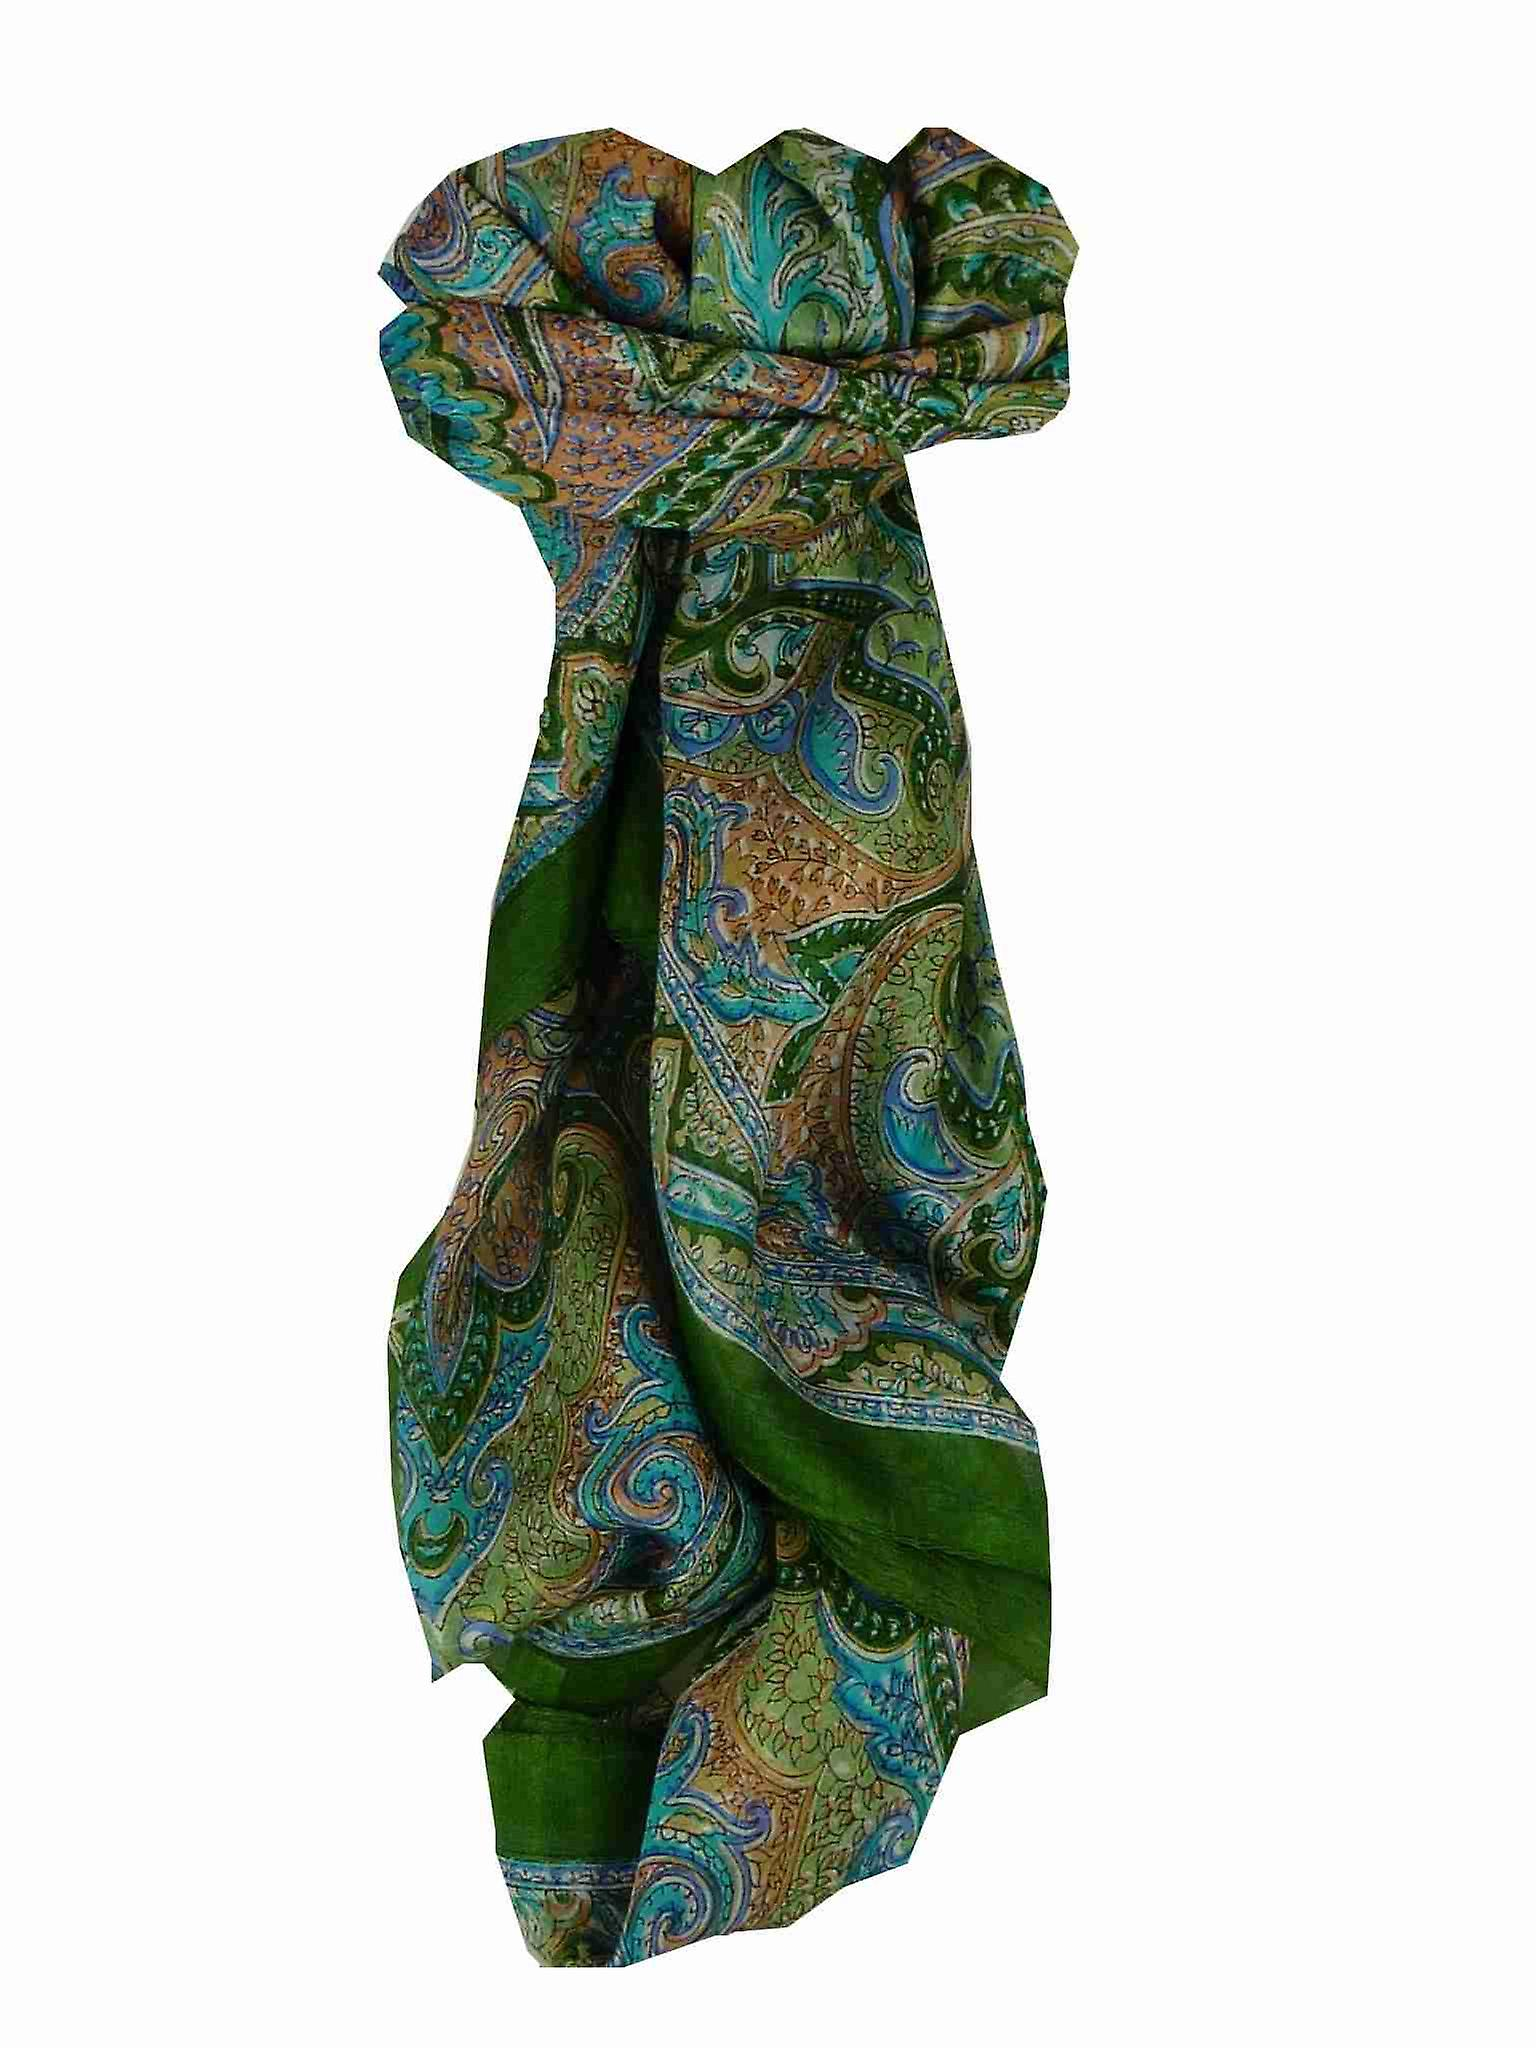 Mulberry Silk Traditional Square Scarf Cheyar Sage by Pashmina & Silk